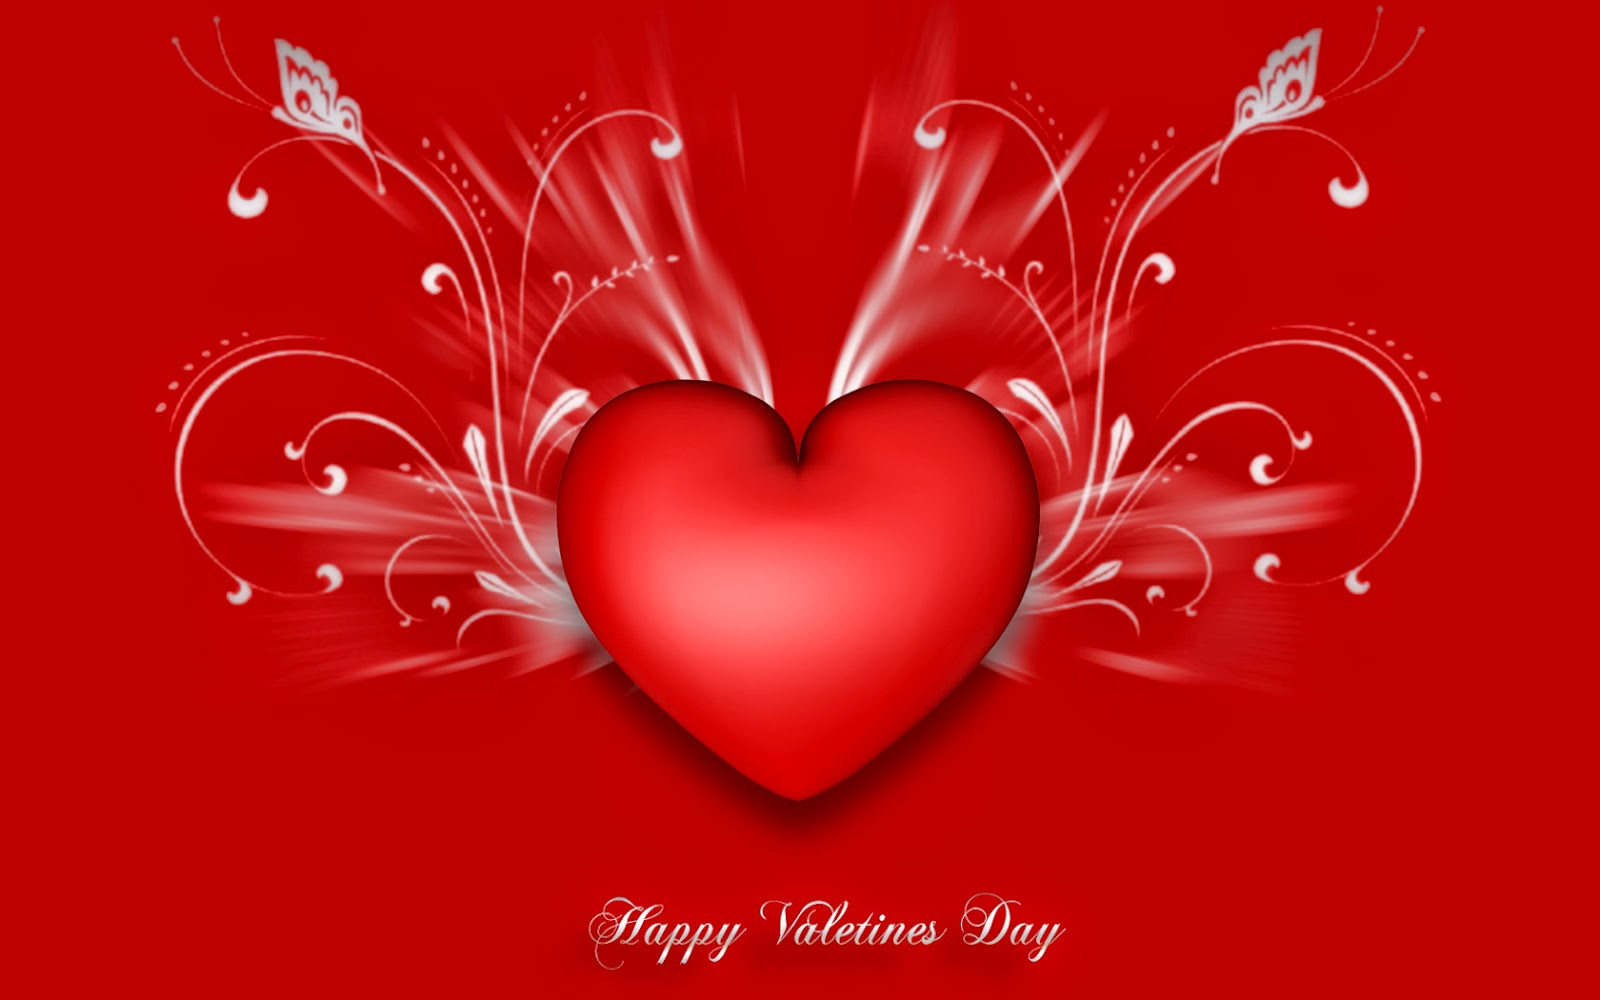 Best 10 Happy Valentines Day 2016 HD Wallpapers Images Pictures Downoad Free